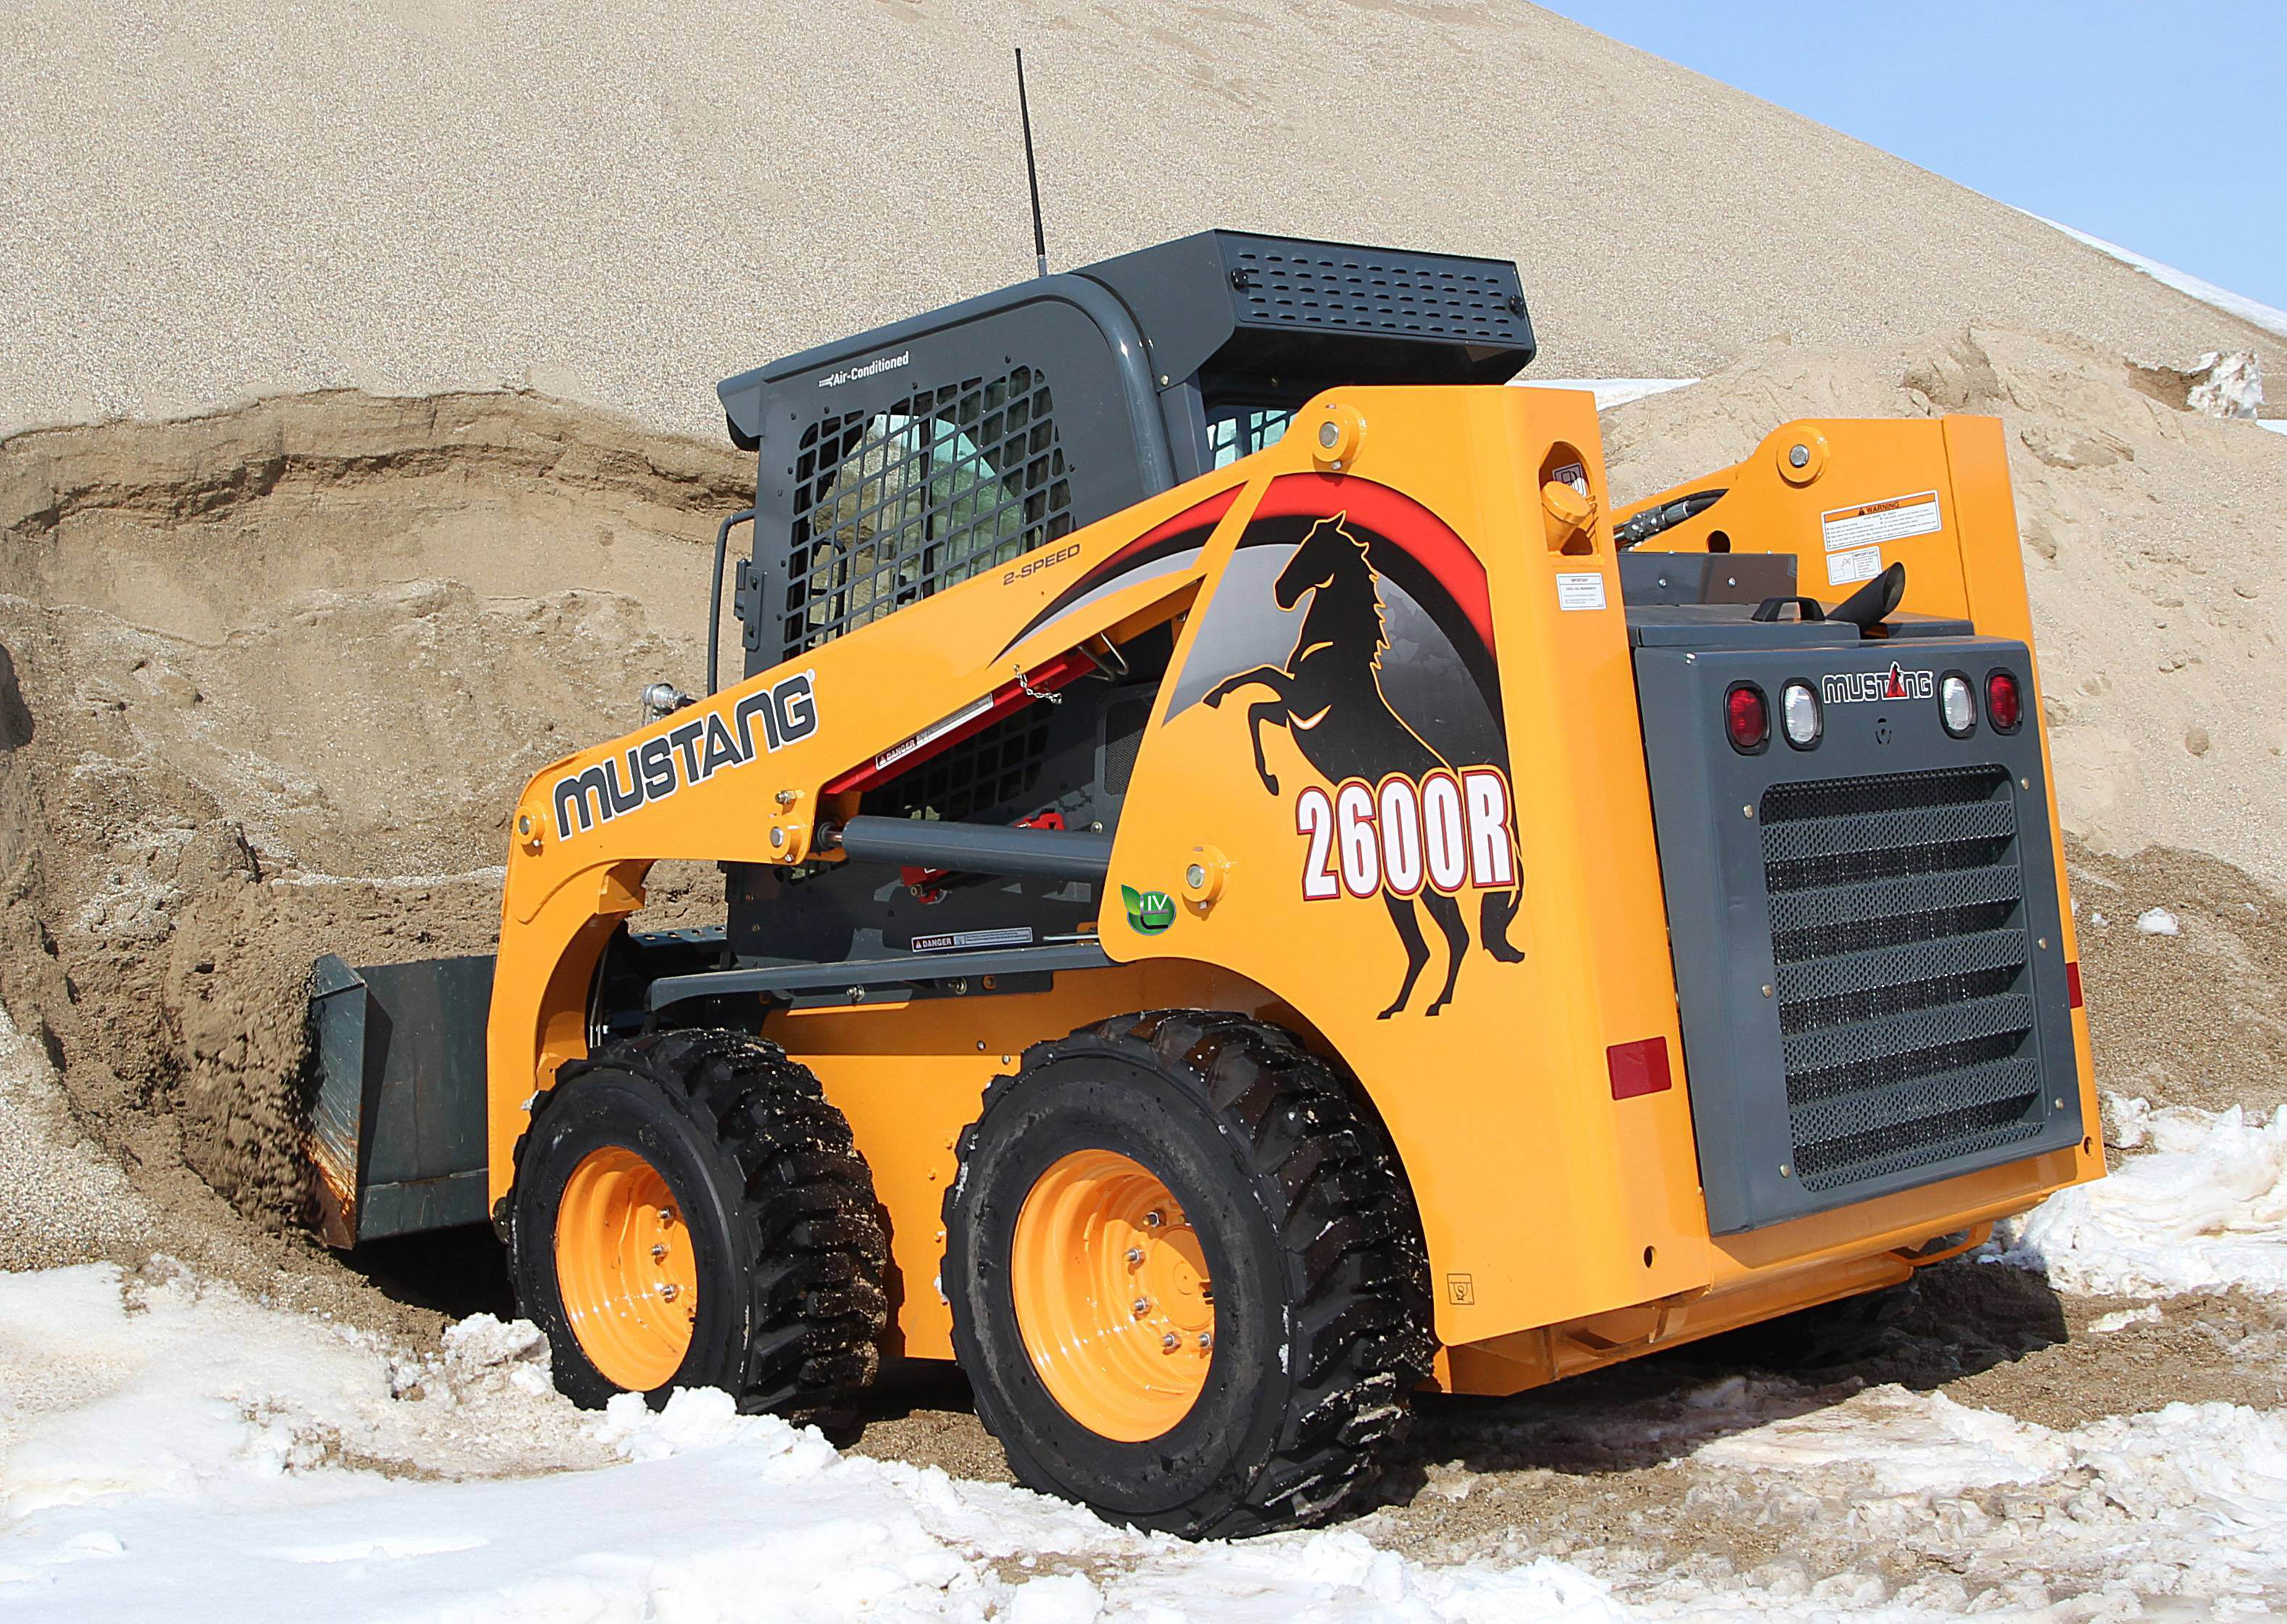 Mustang launches R Series skid-steers with Tier 4 engines, enhanced